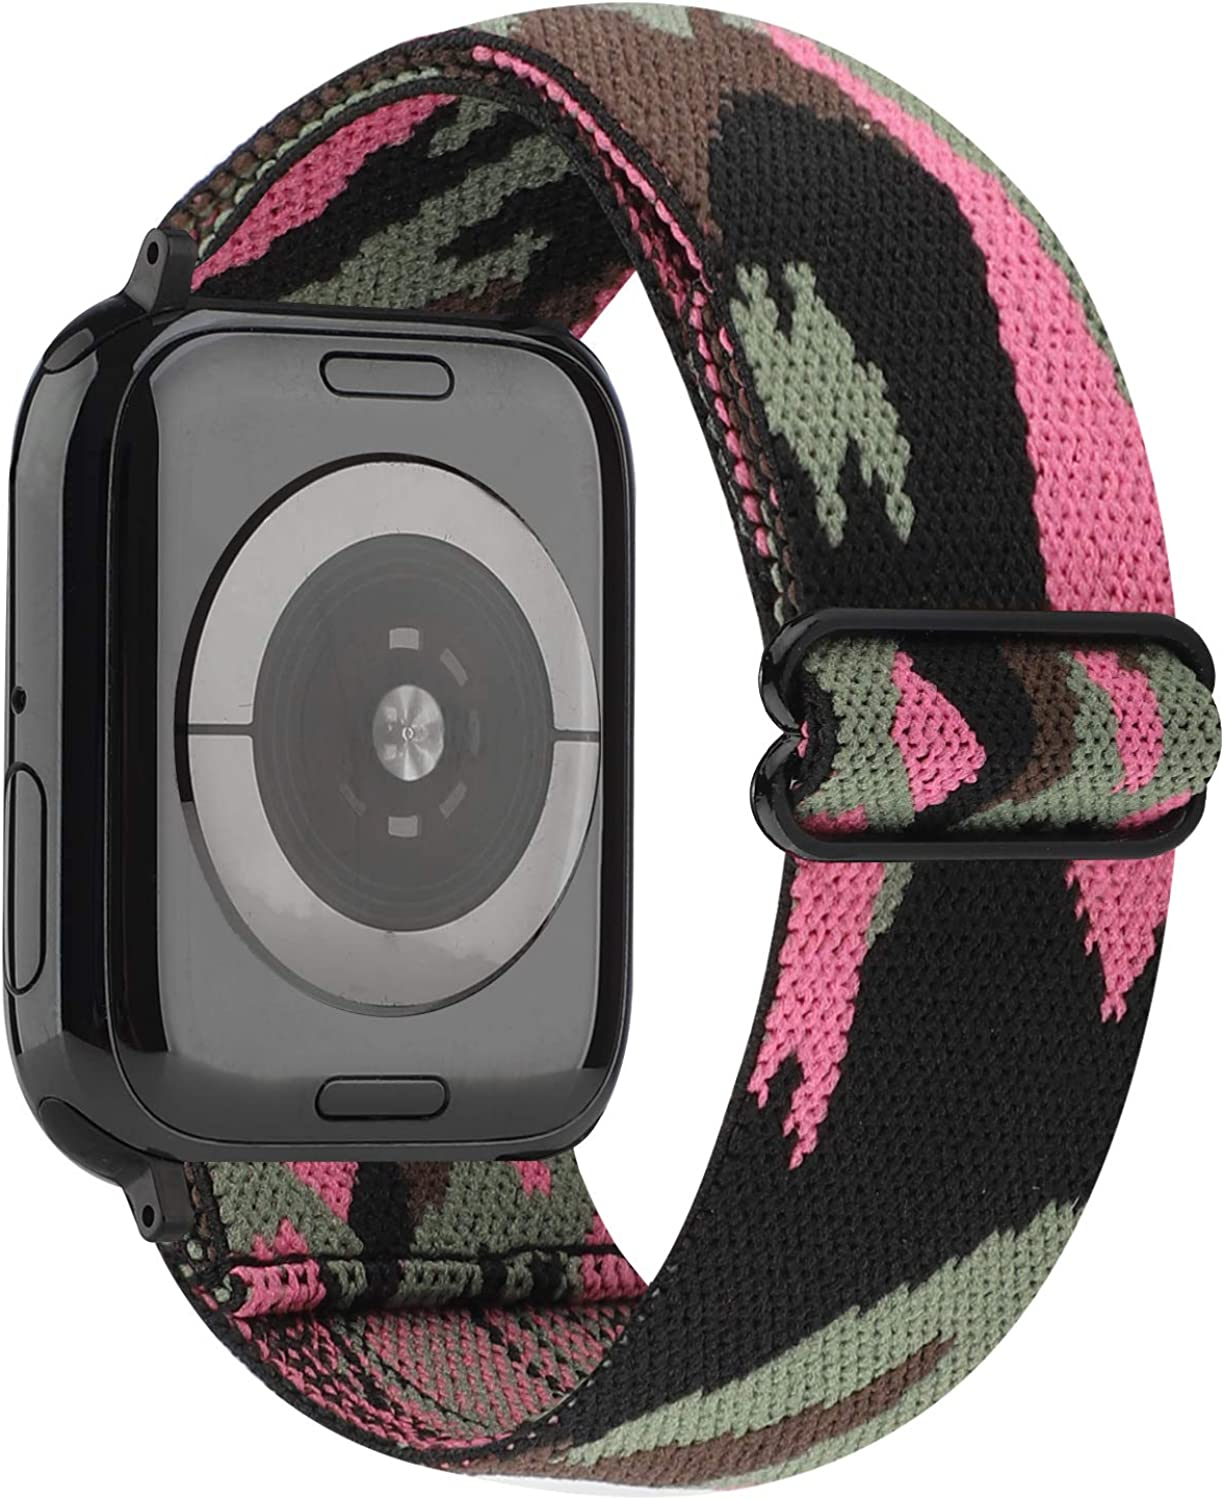 YOSWAN Stretchy Nylon Solo Loop Strap Compatible with Apple Watch Band 38/40mm Soft Breathable Adjustable Elastic Women Wristband for iWatch SE Series 6 5 4 3 2 1